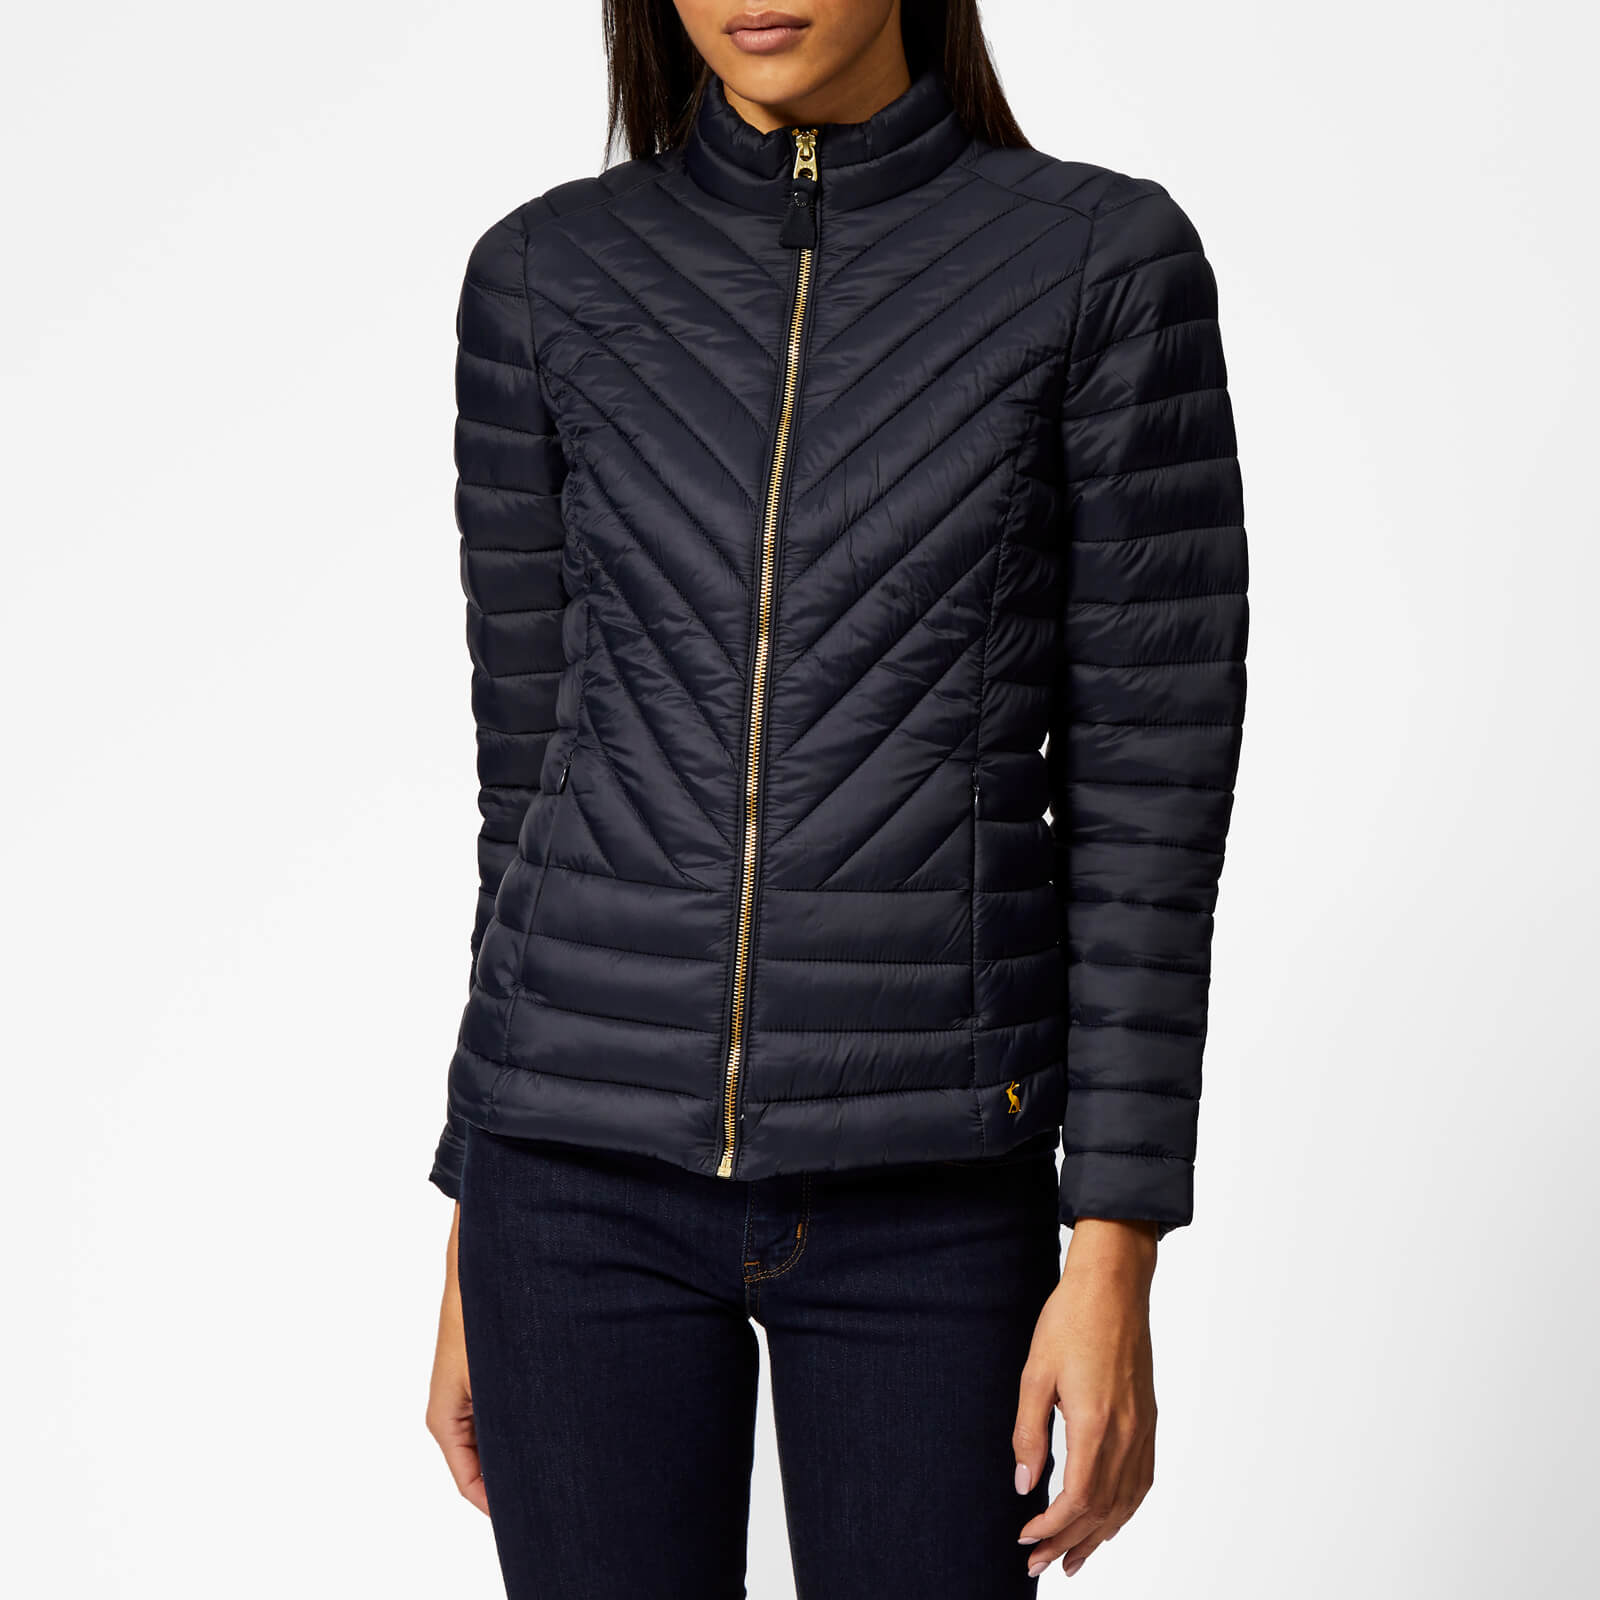 90690daf38fd Joules Women S Elo Chevron Quilted Jacket Marine Navy Womens